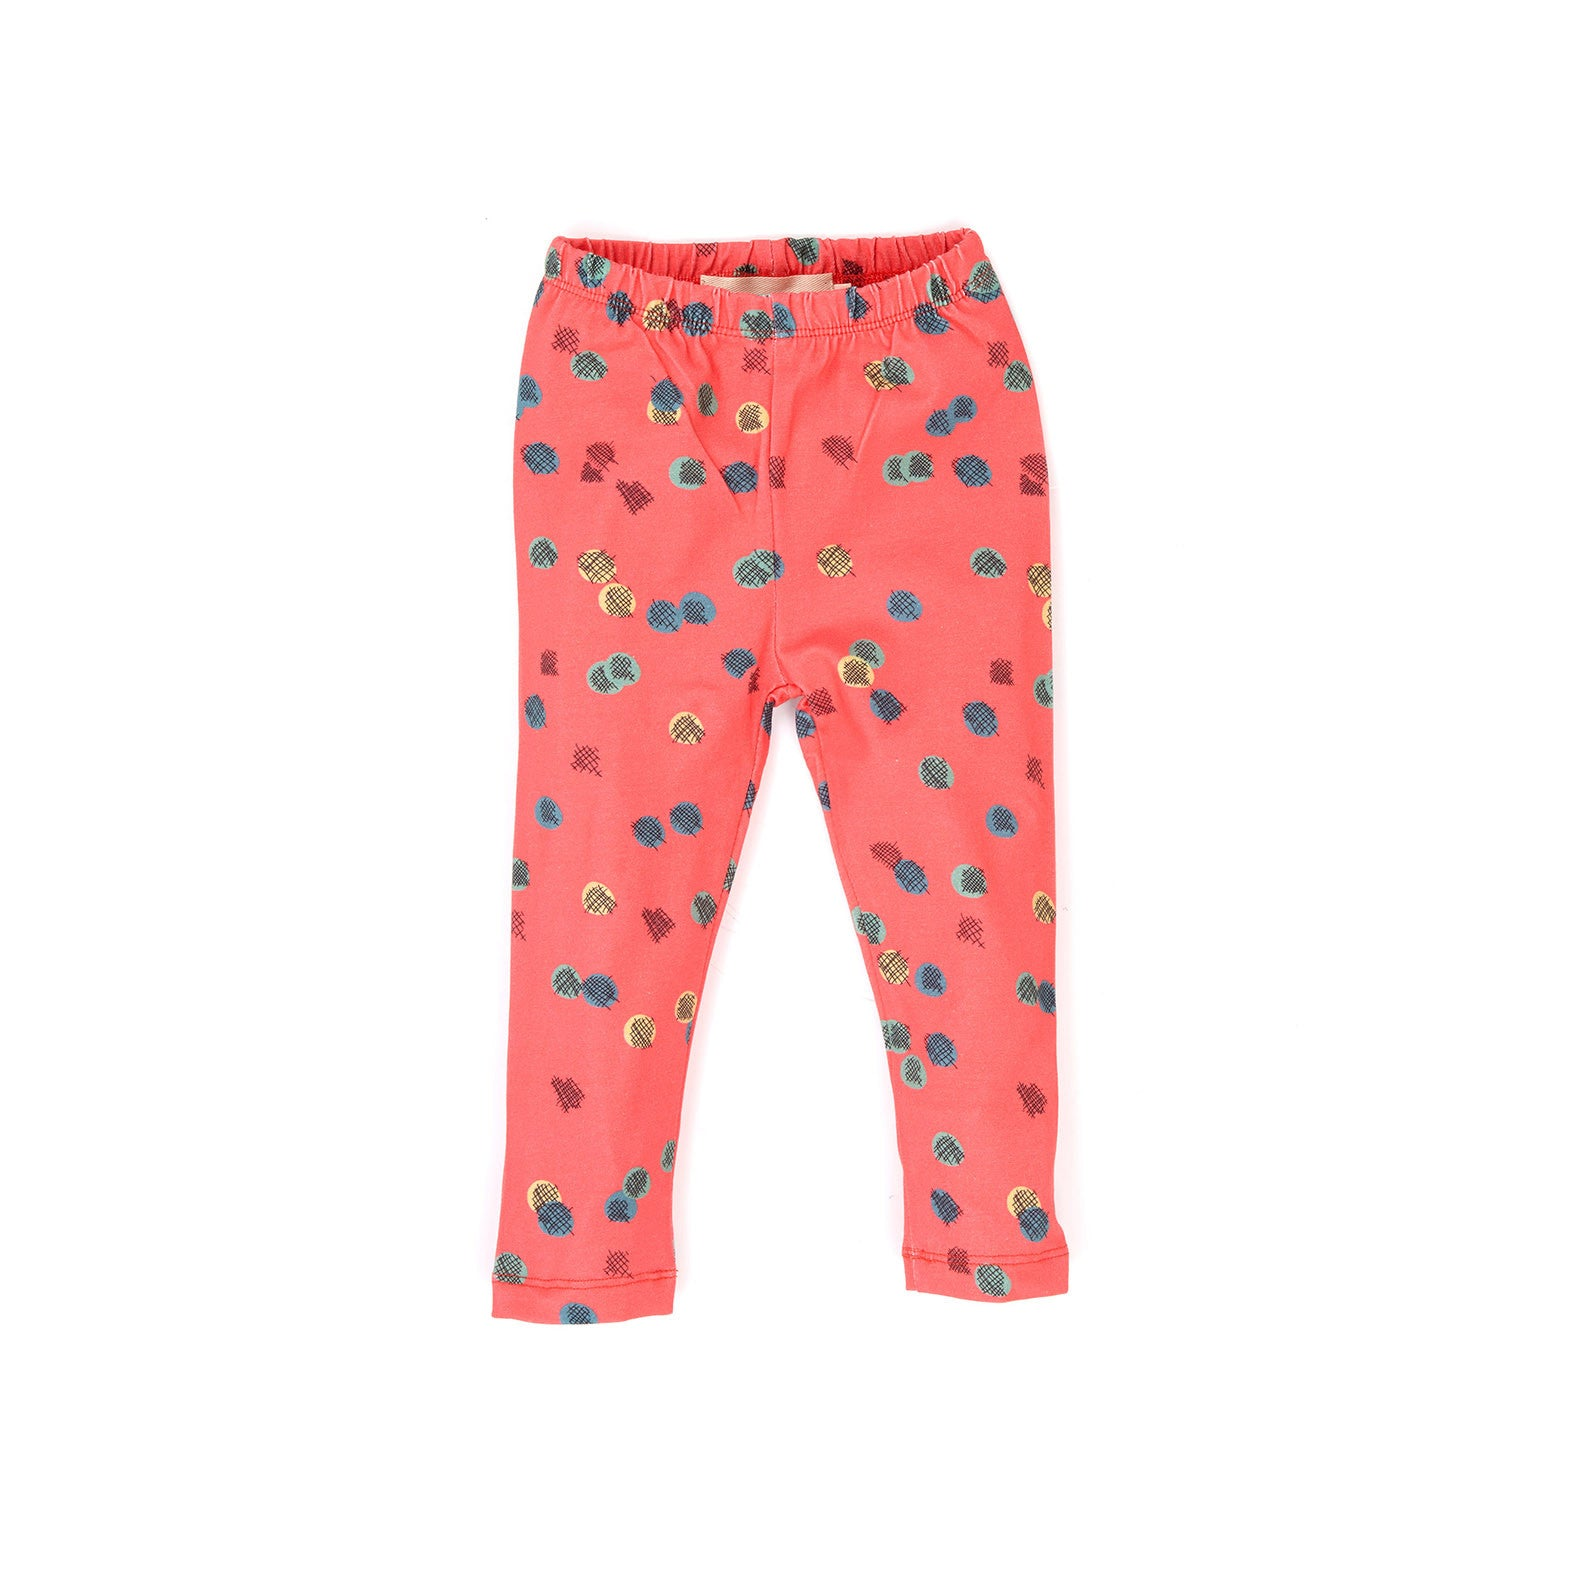 Leggings - Pink Splodge - Palava